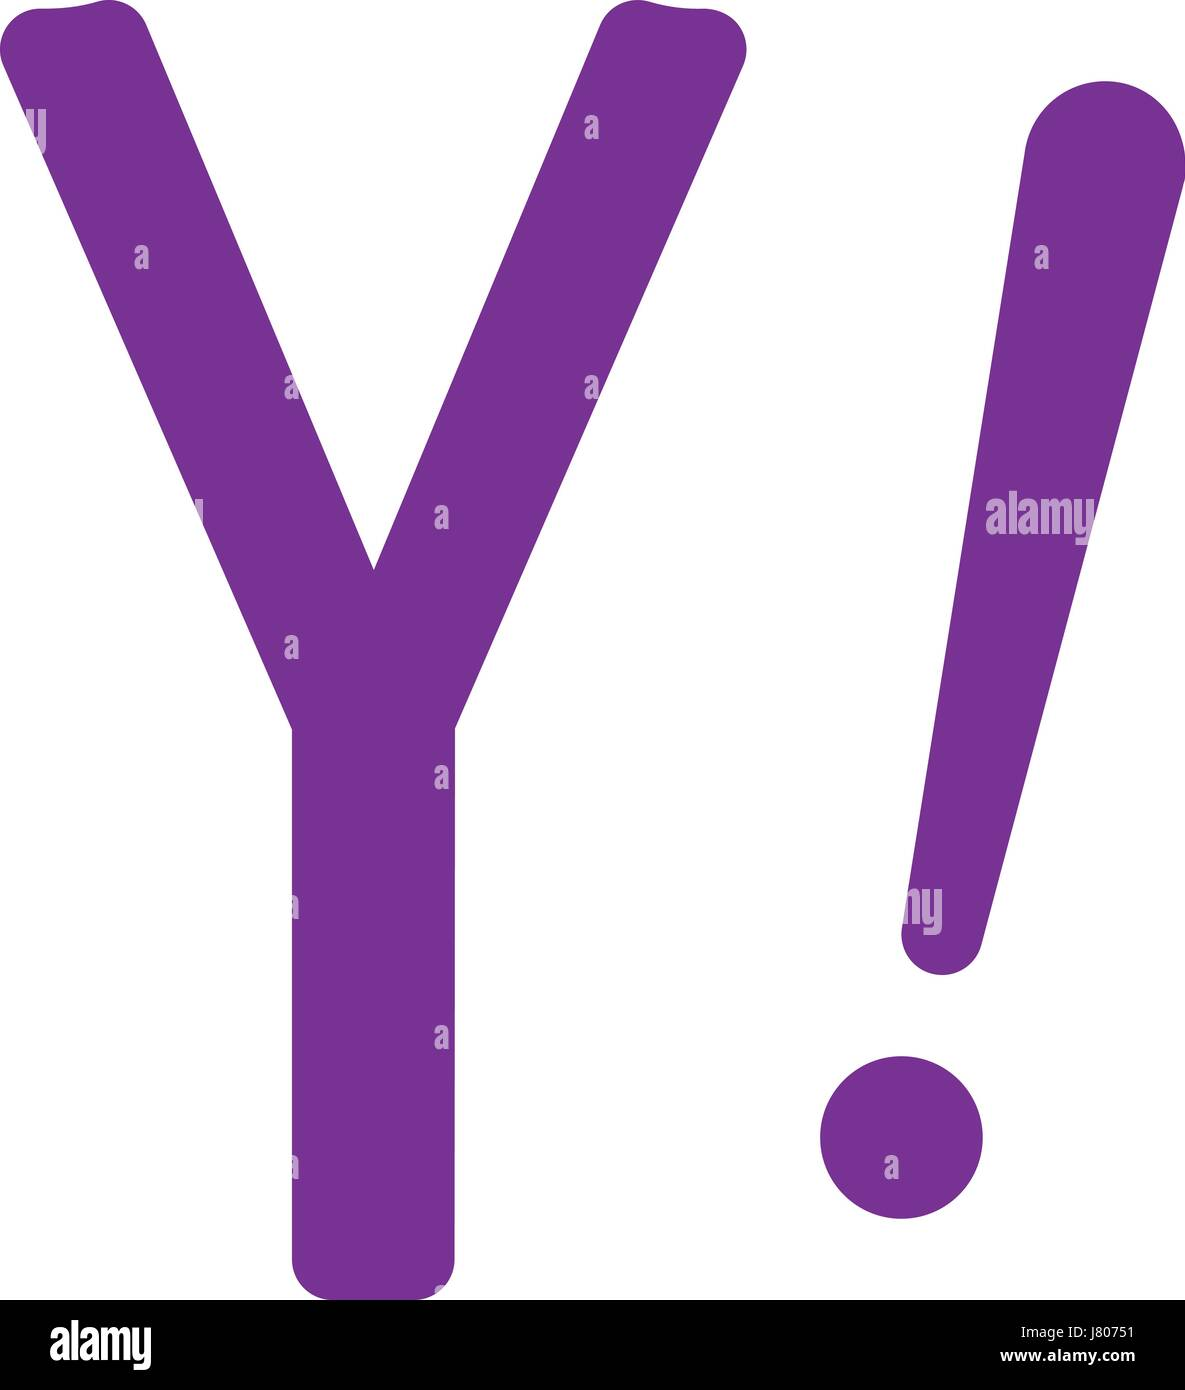 Yahoo Search Engine Stock Vector Images Alamy